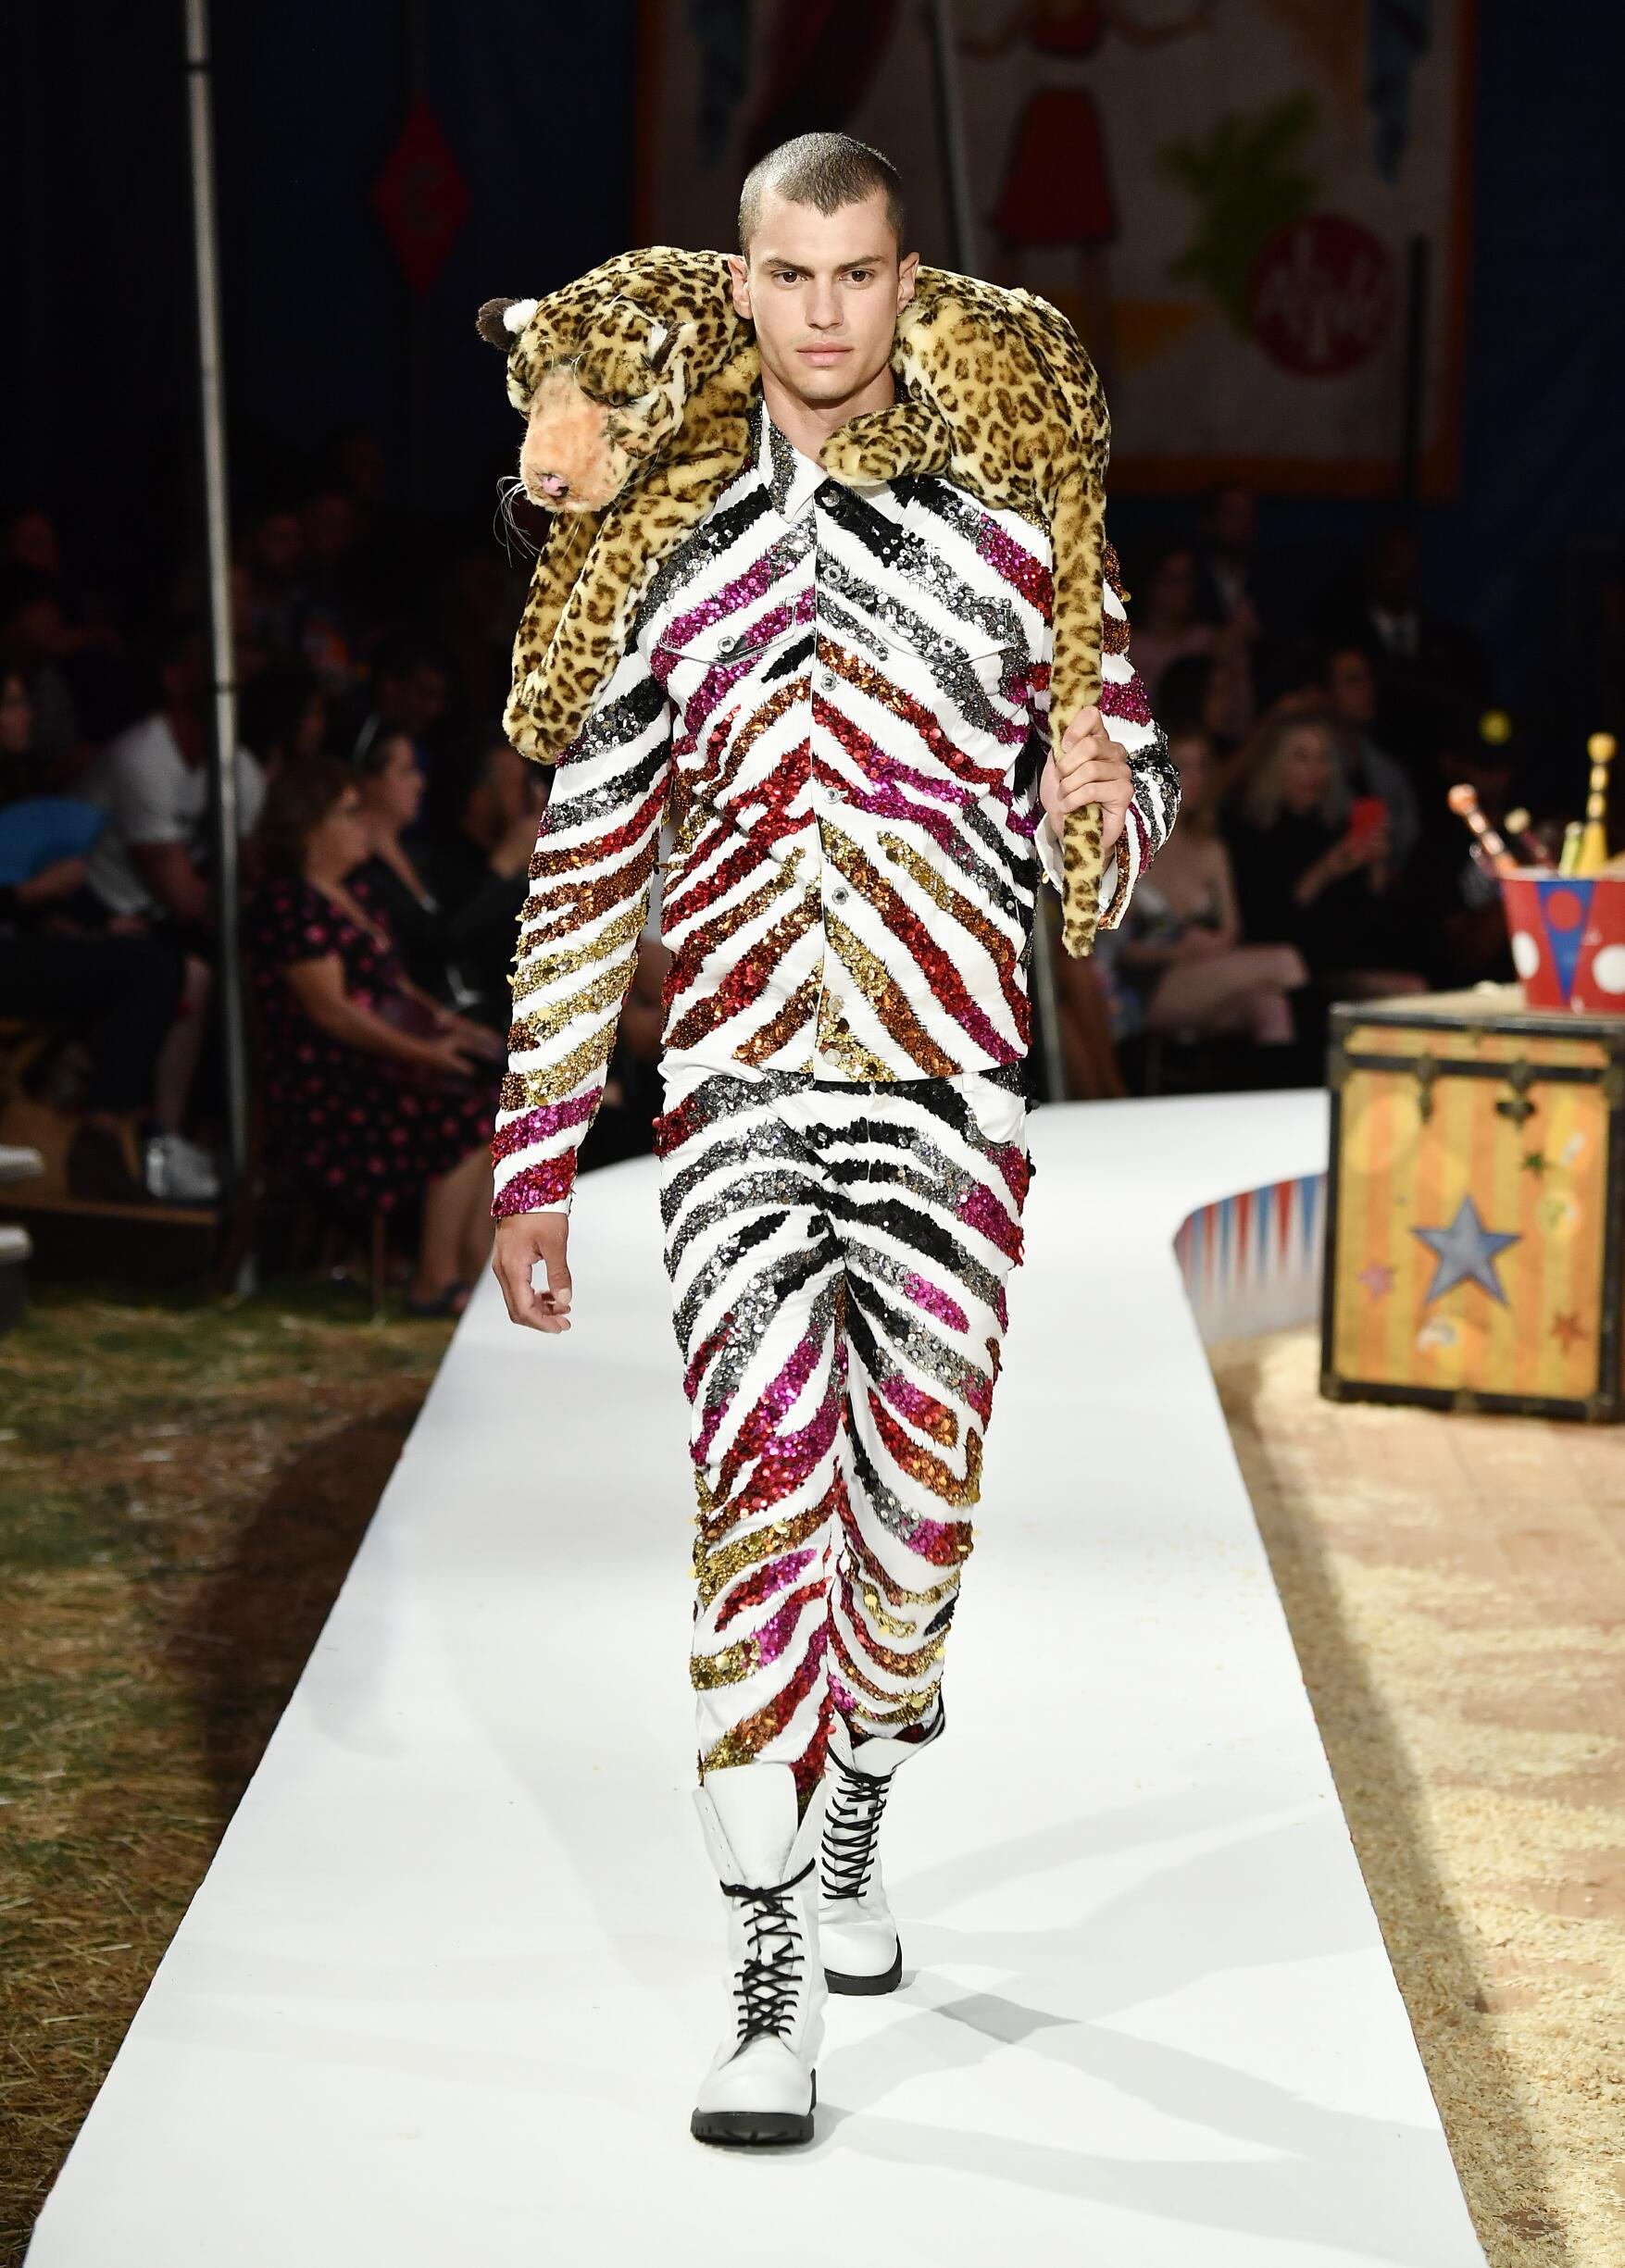 Moschino Spring Summer 2019 Menswear and Women's Resort Collection Look 33 Los Angeles